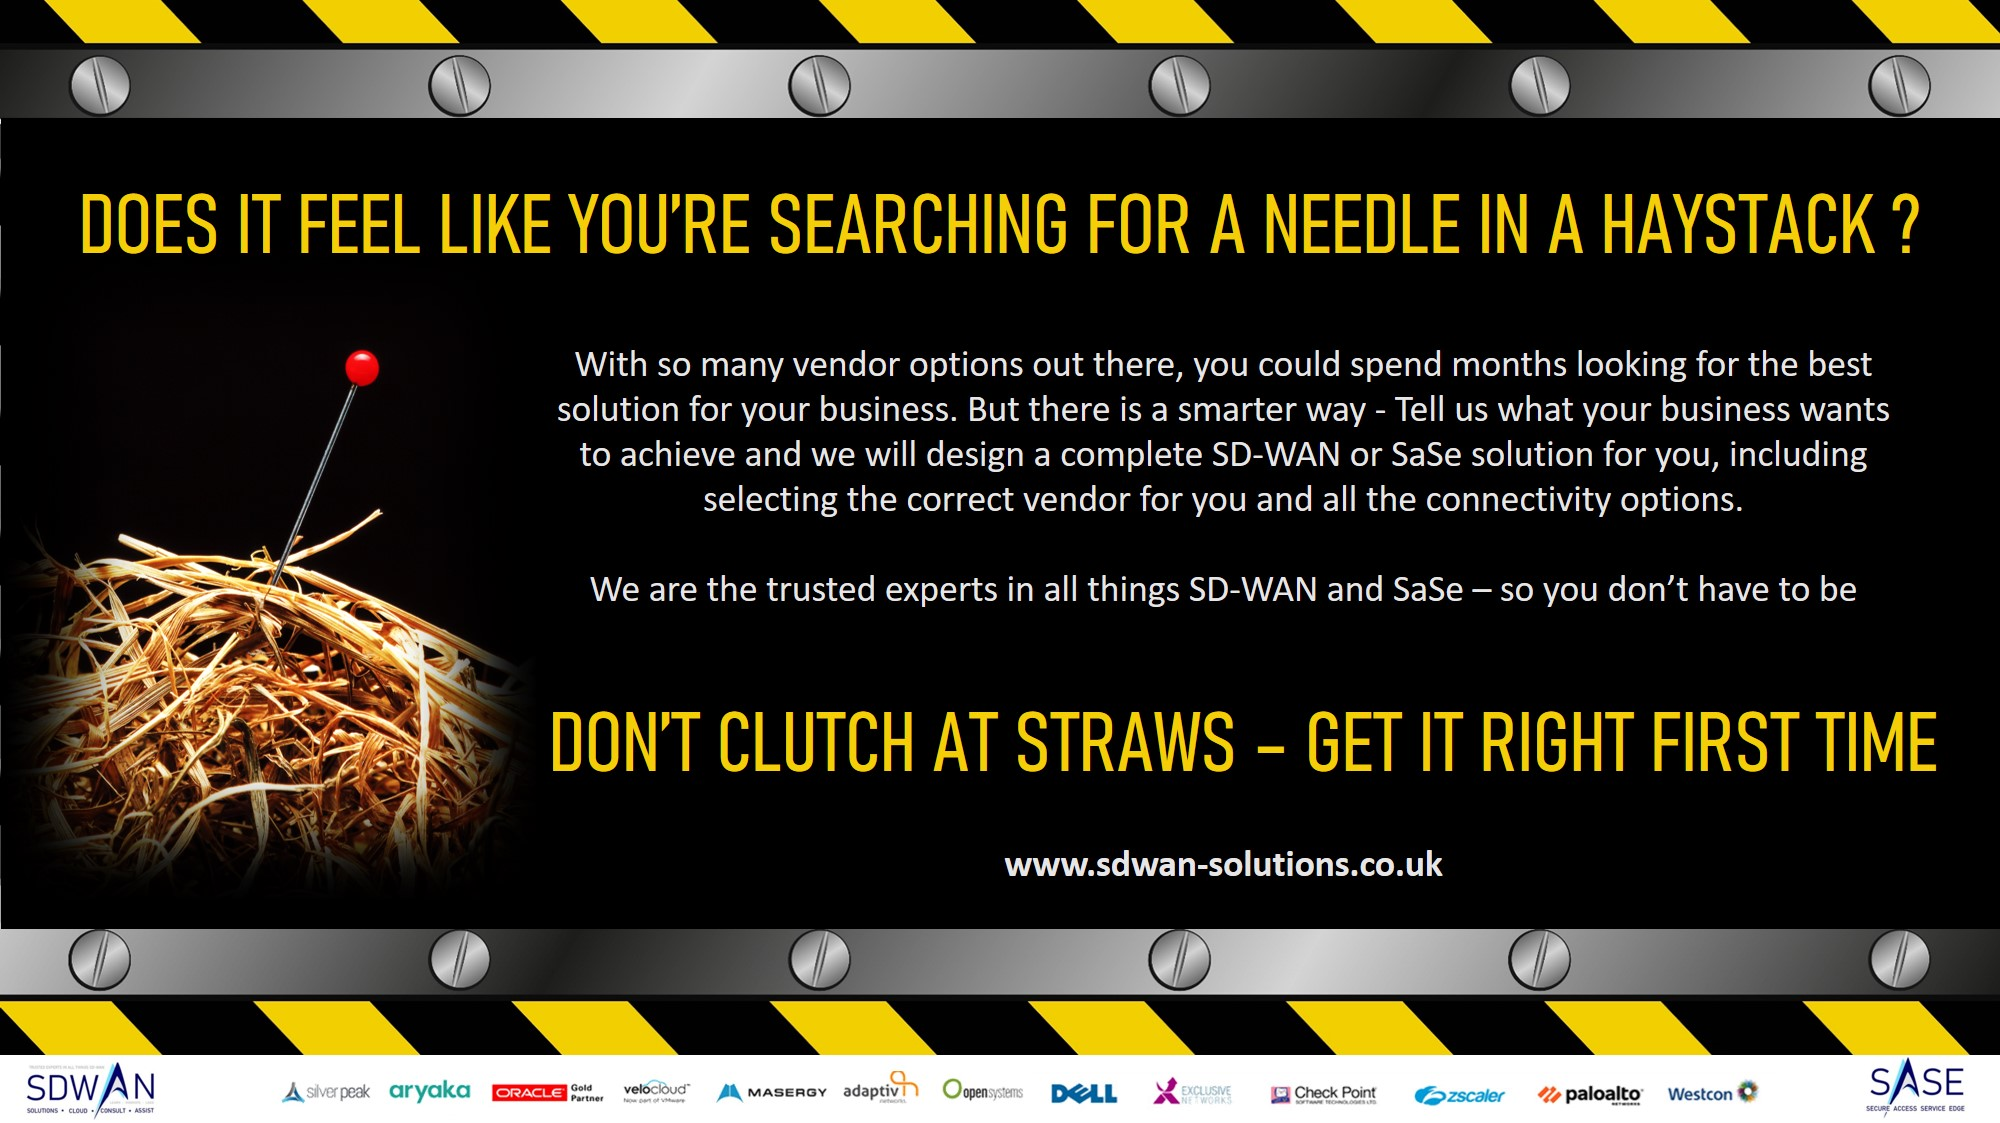 Don't clutch at straws or search for a needle in a haystack to find your perfect SD-WAN solution